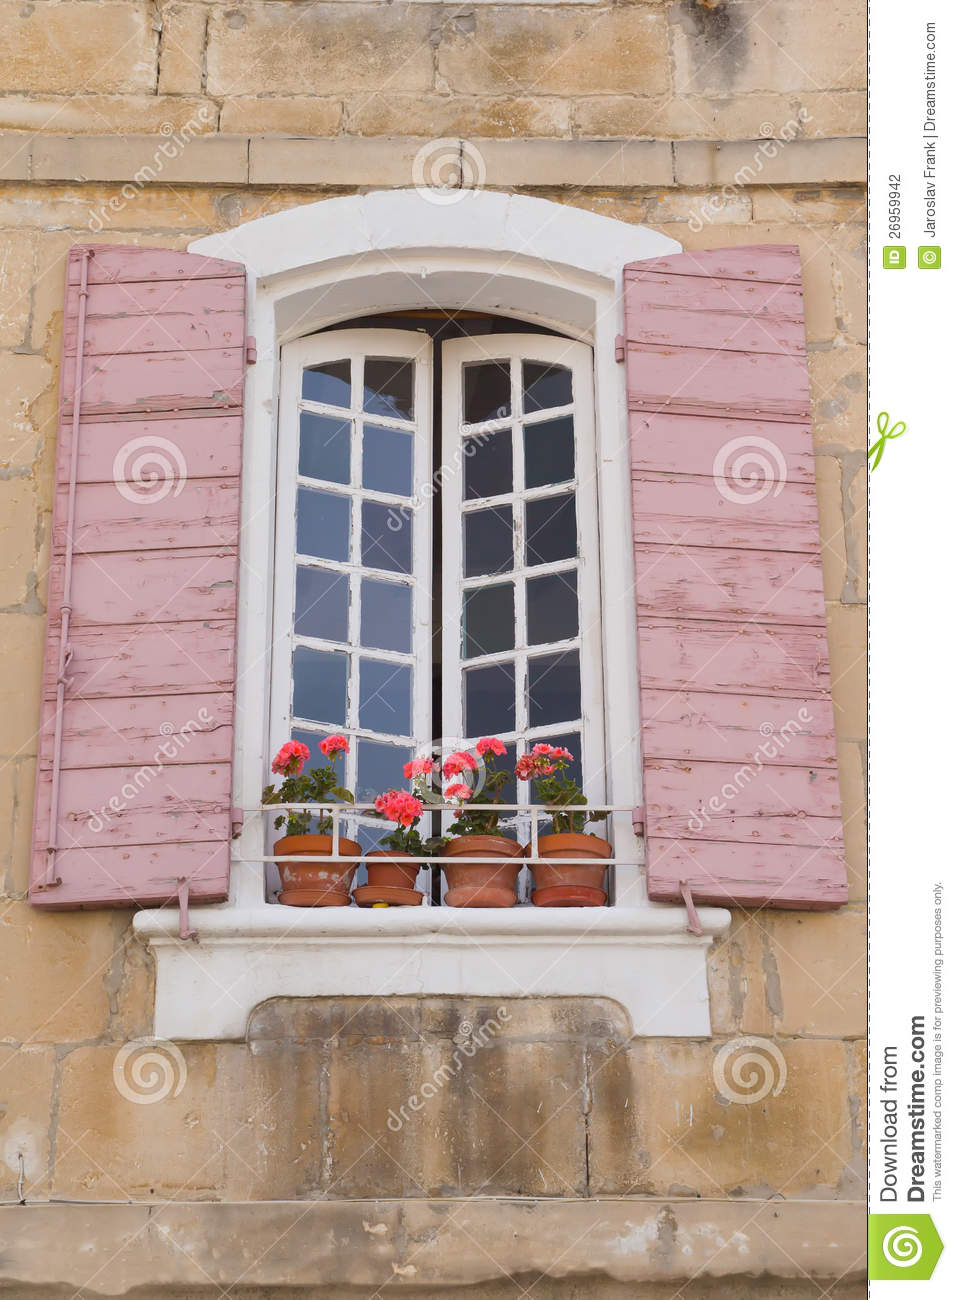 traditional french window with pink shutters stock